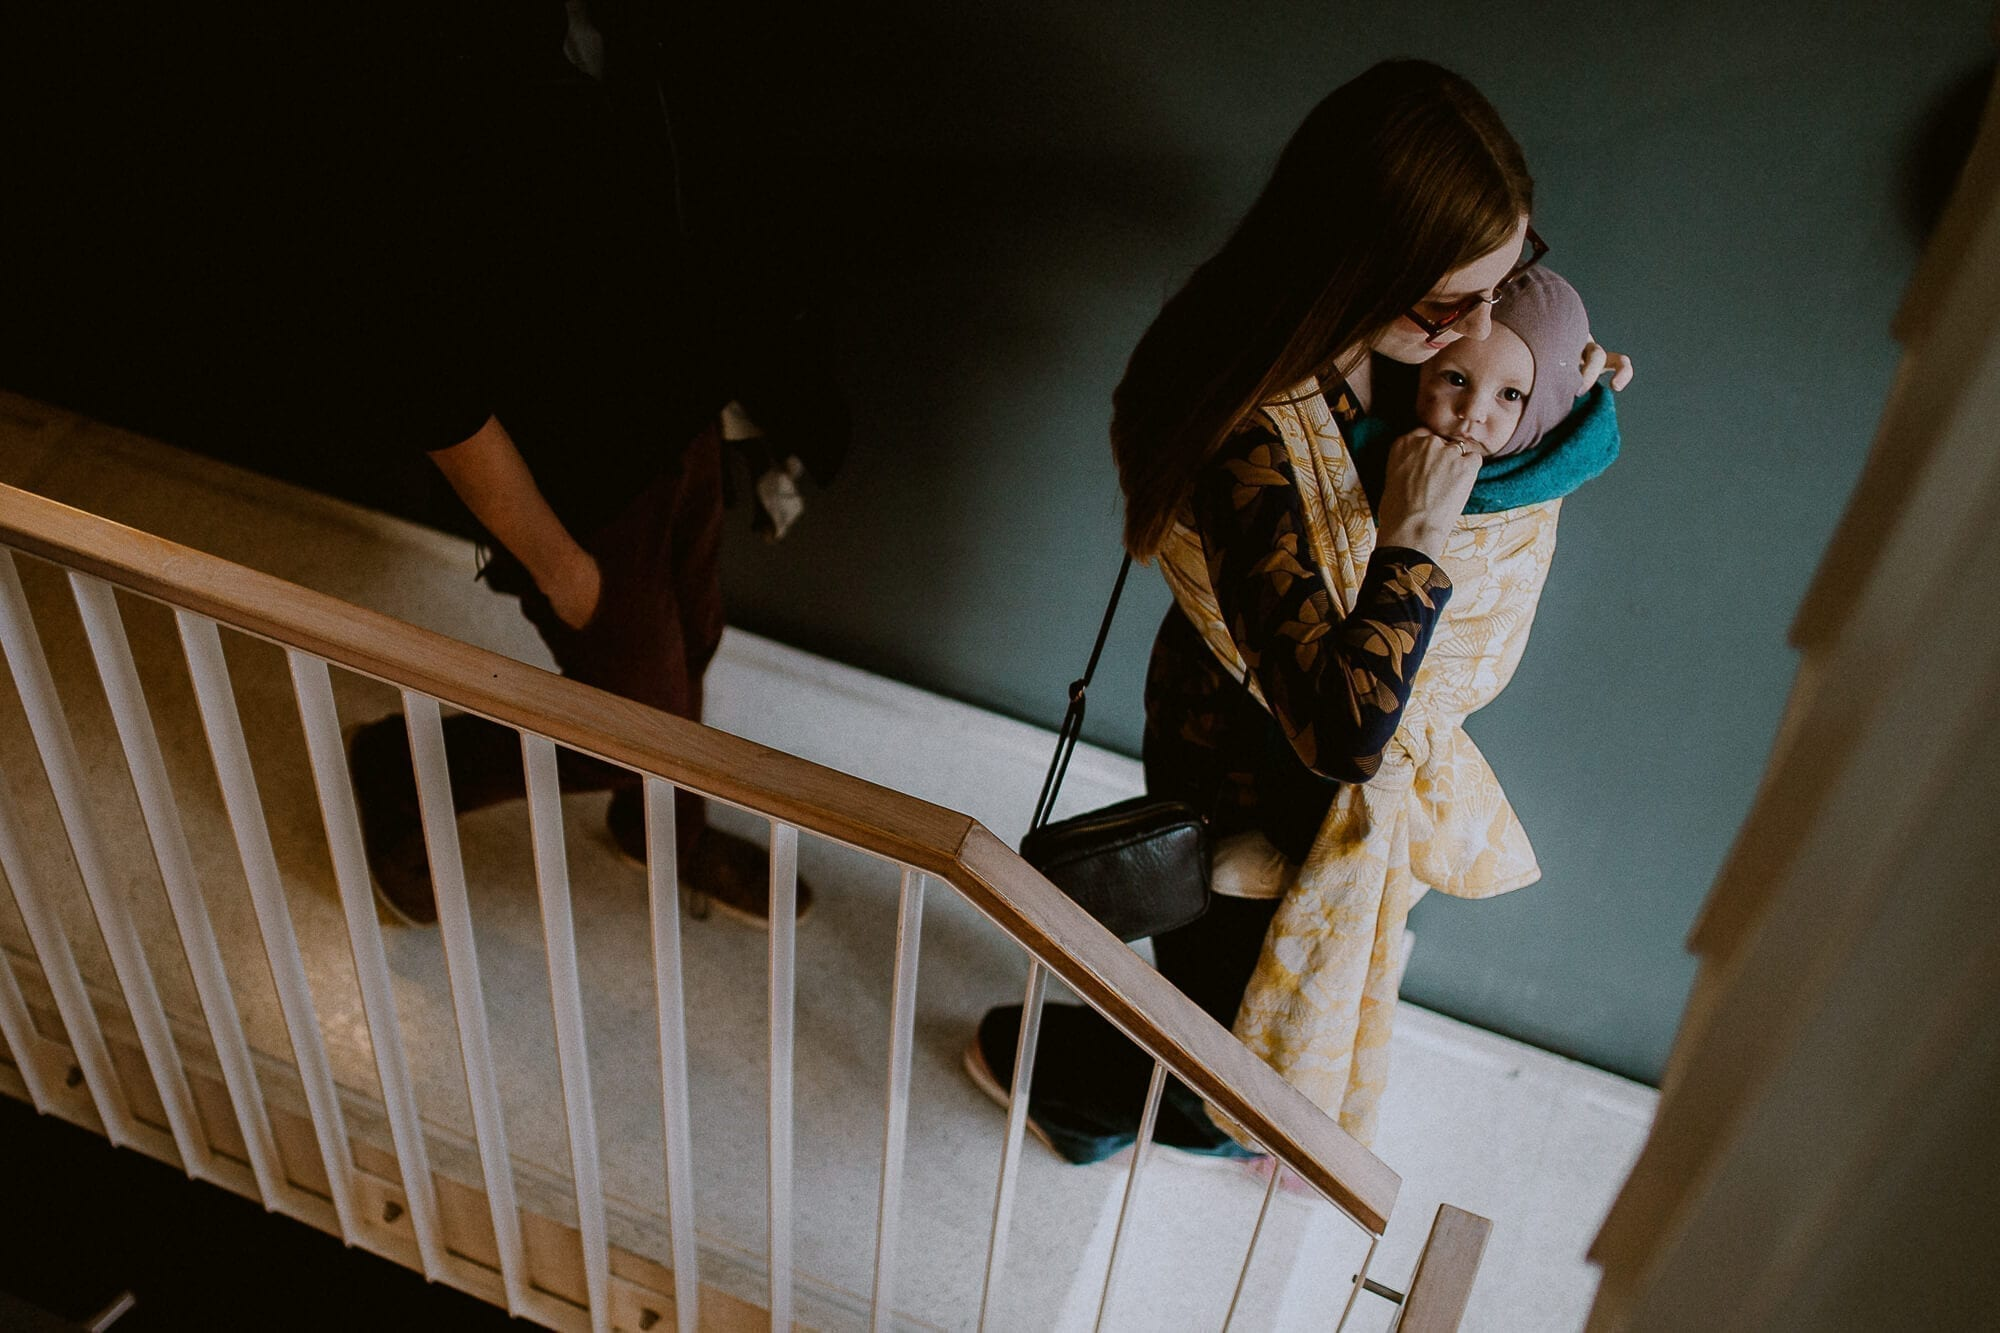 Two persons are walking down a stairway. The woman is in front wearing her child in a woven baby carrier. The carrier is the all-cotten wrap Au by Levate wraps.